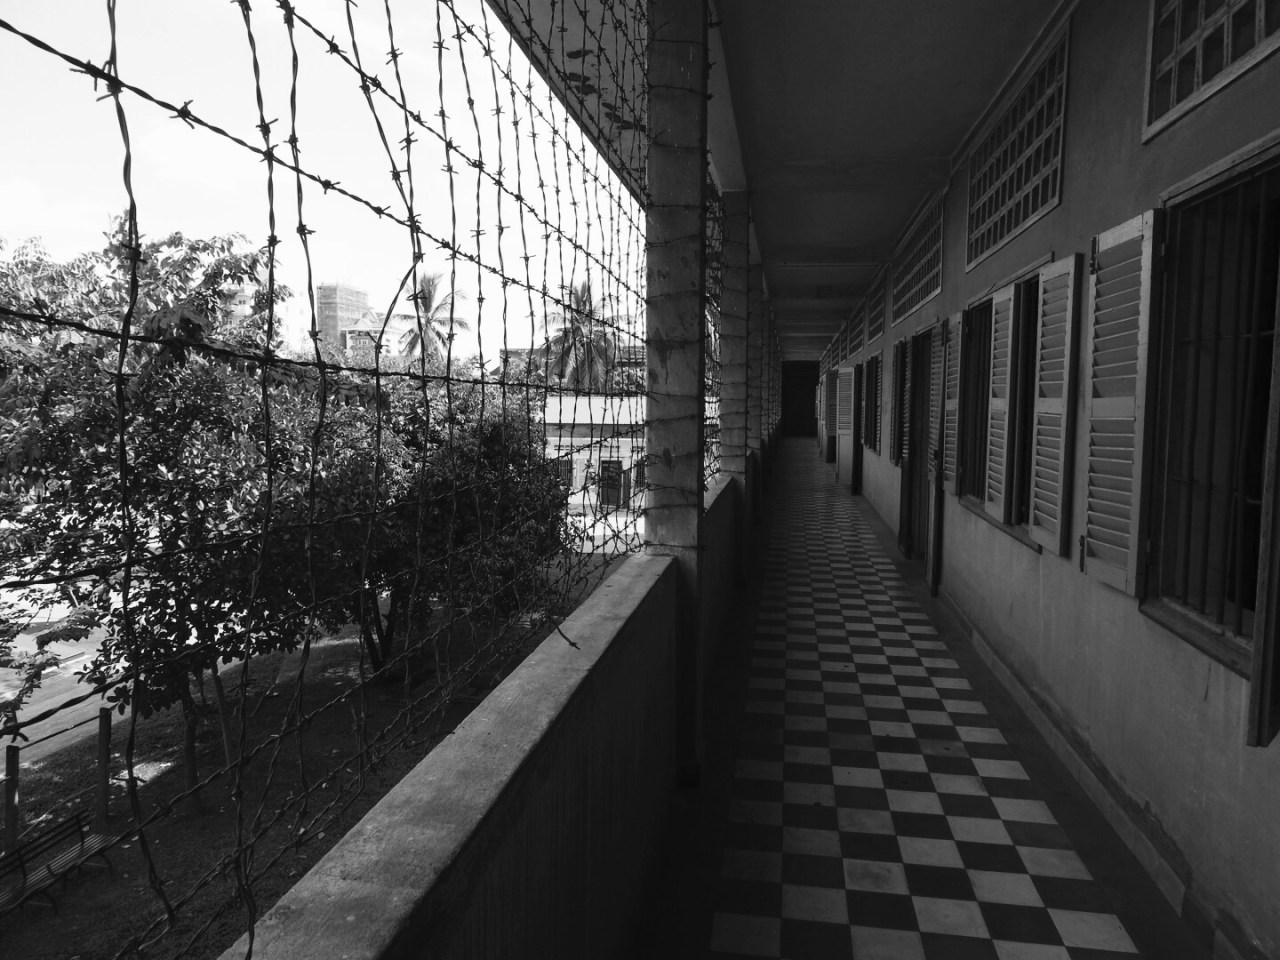 Tuol Sleng Detention Centre, Phnom Penh, Cambodia